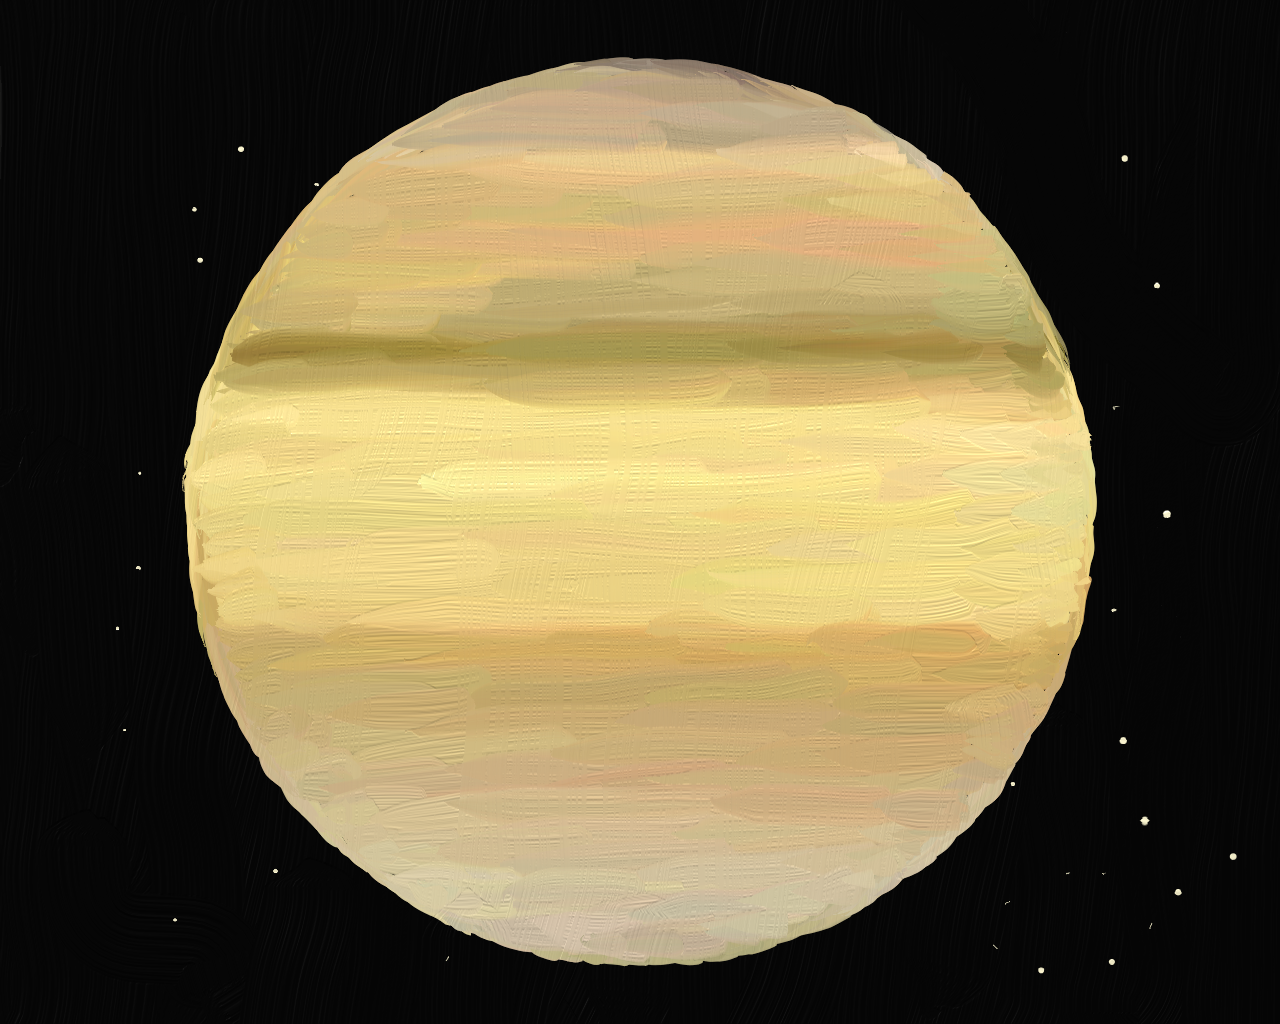 Saturn, an oil painting